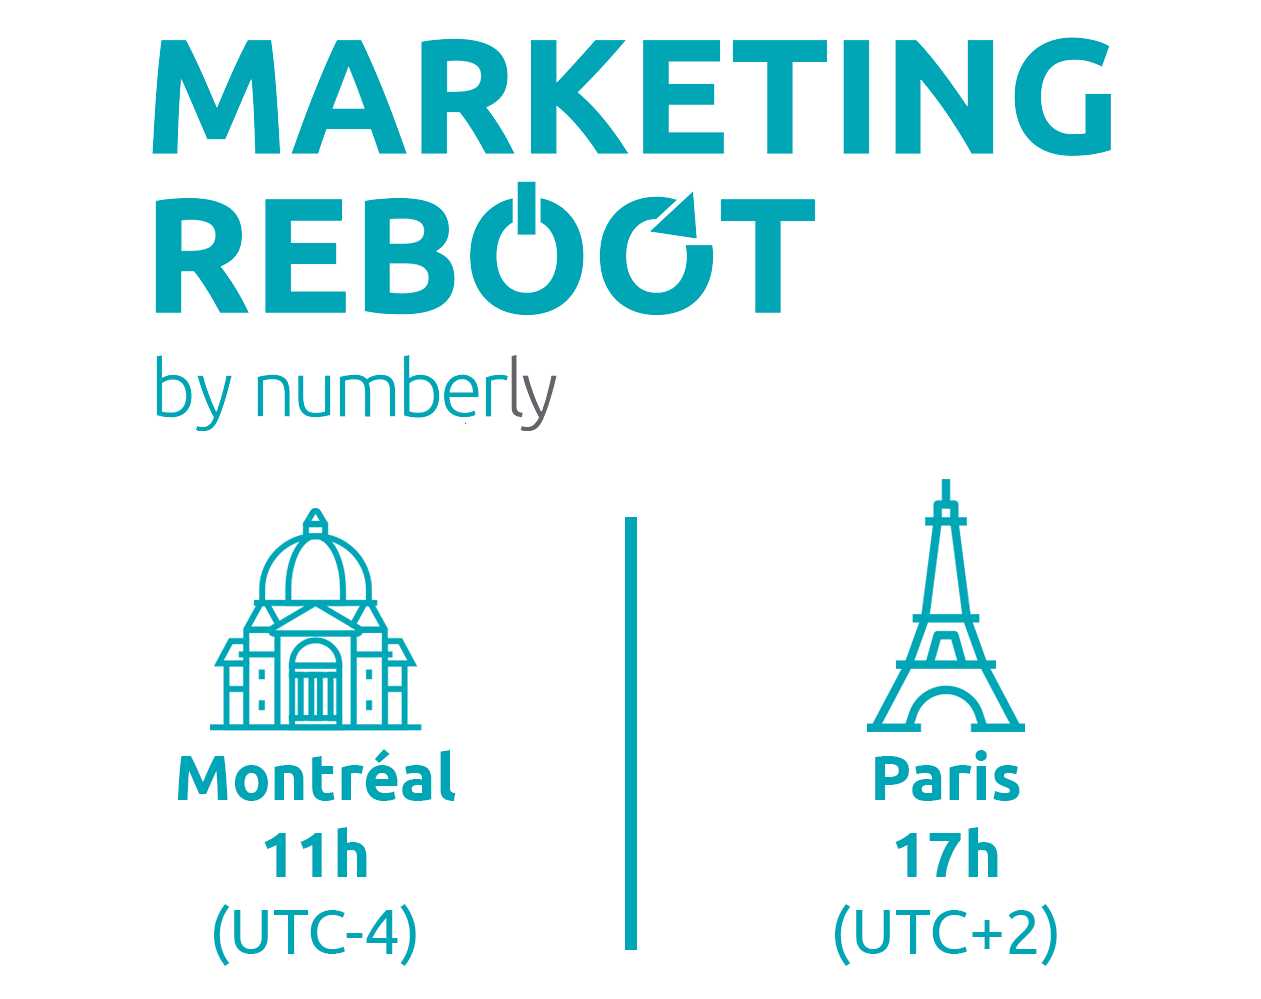 Marketing Reboot by Numberly : Montréal 11h | Paris 17h